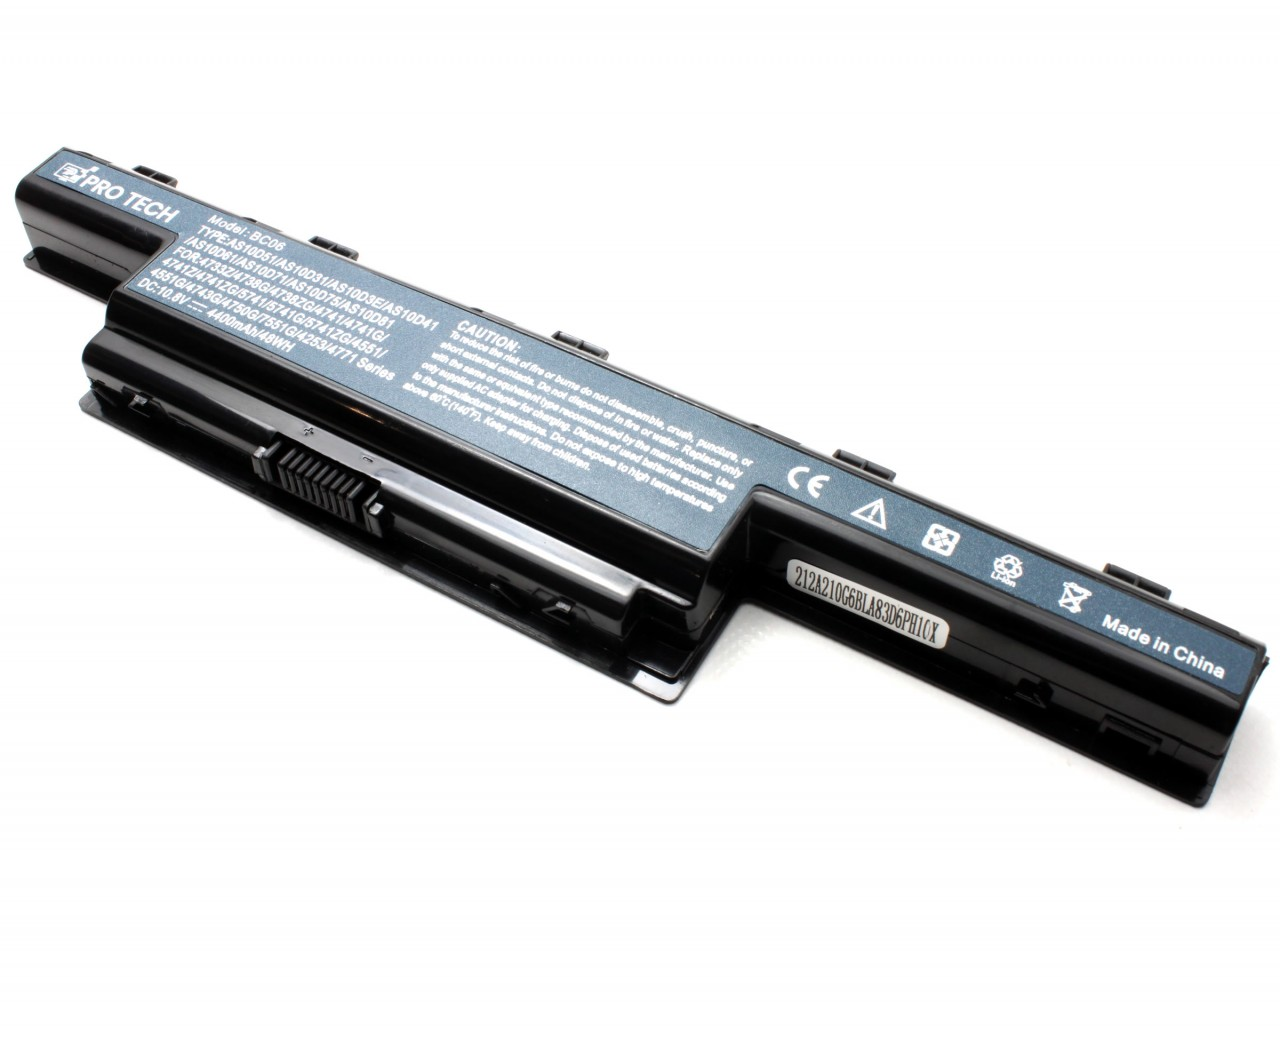 Baterie Packard Bell EasyNote PEW92 9 celule imagine powerlaptop.ro 2021